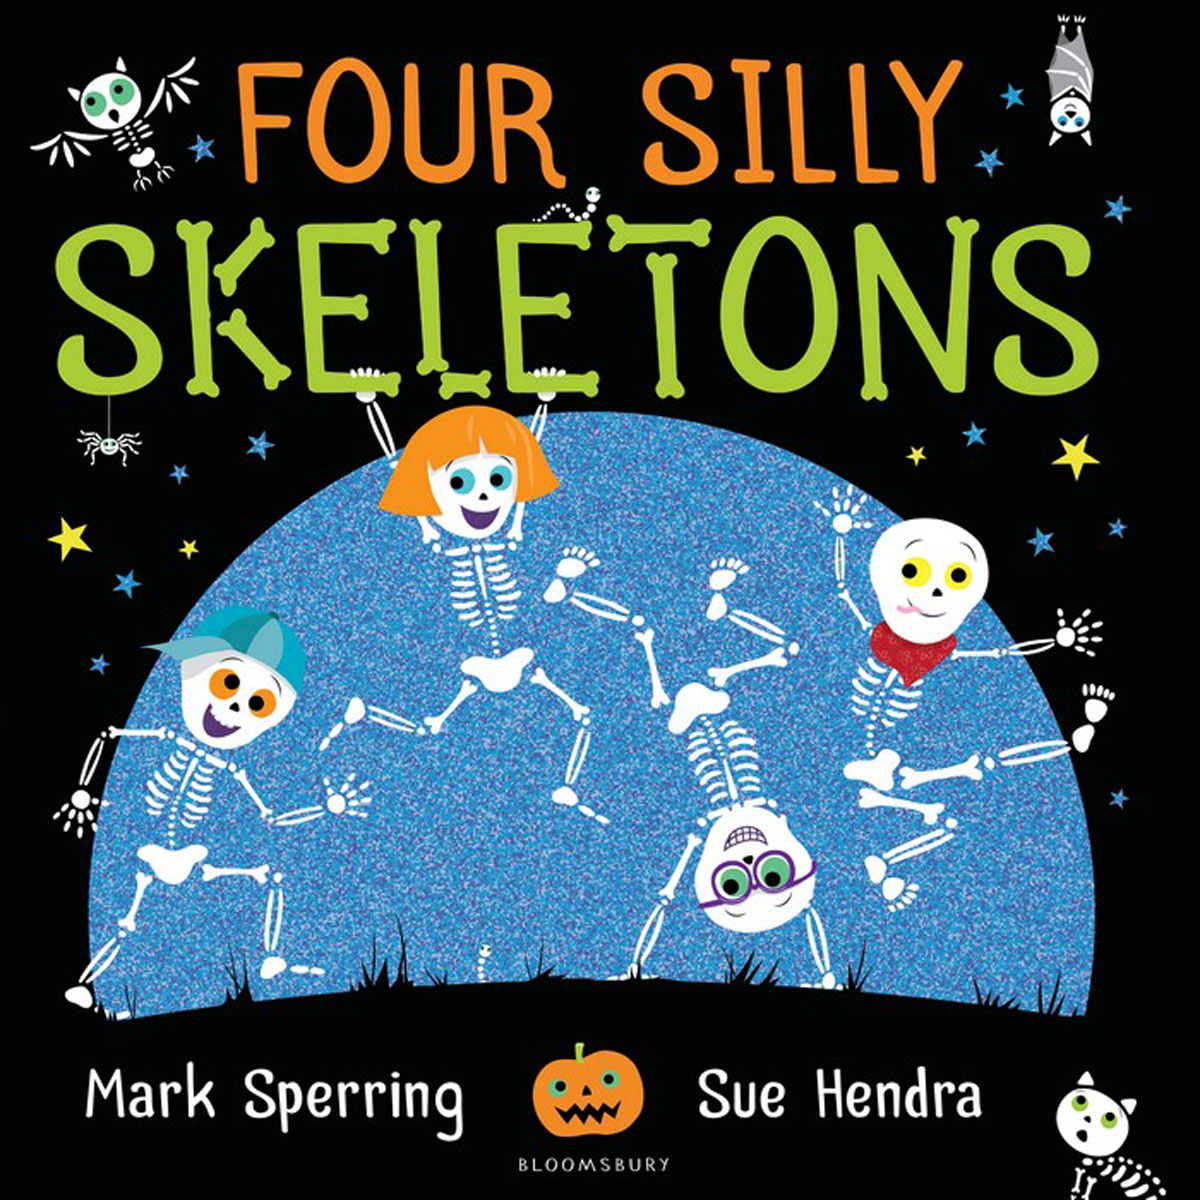 Four Silly Skeletons gamma ray skeletons